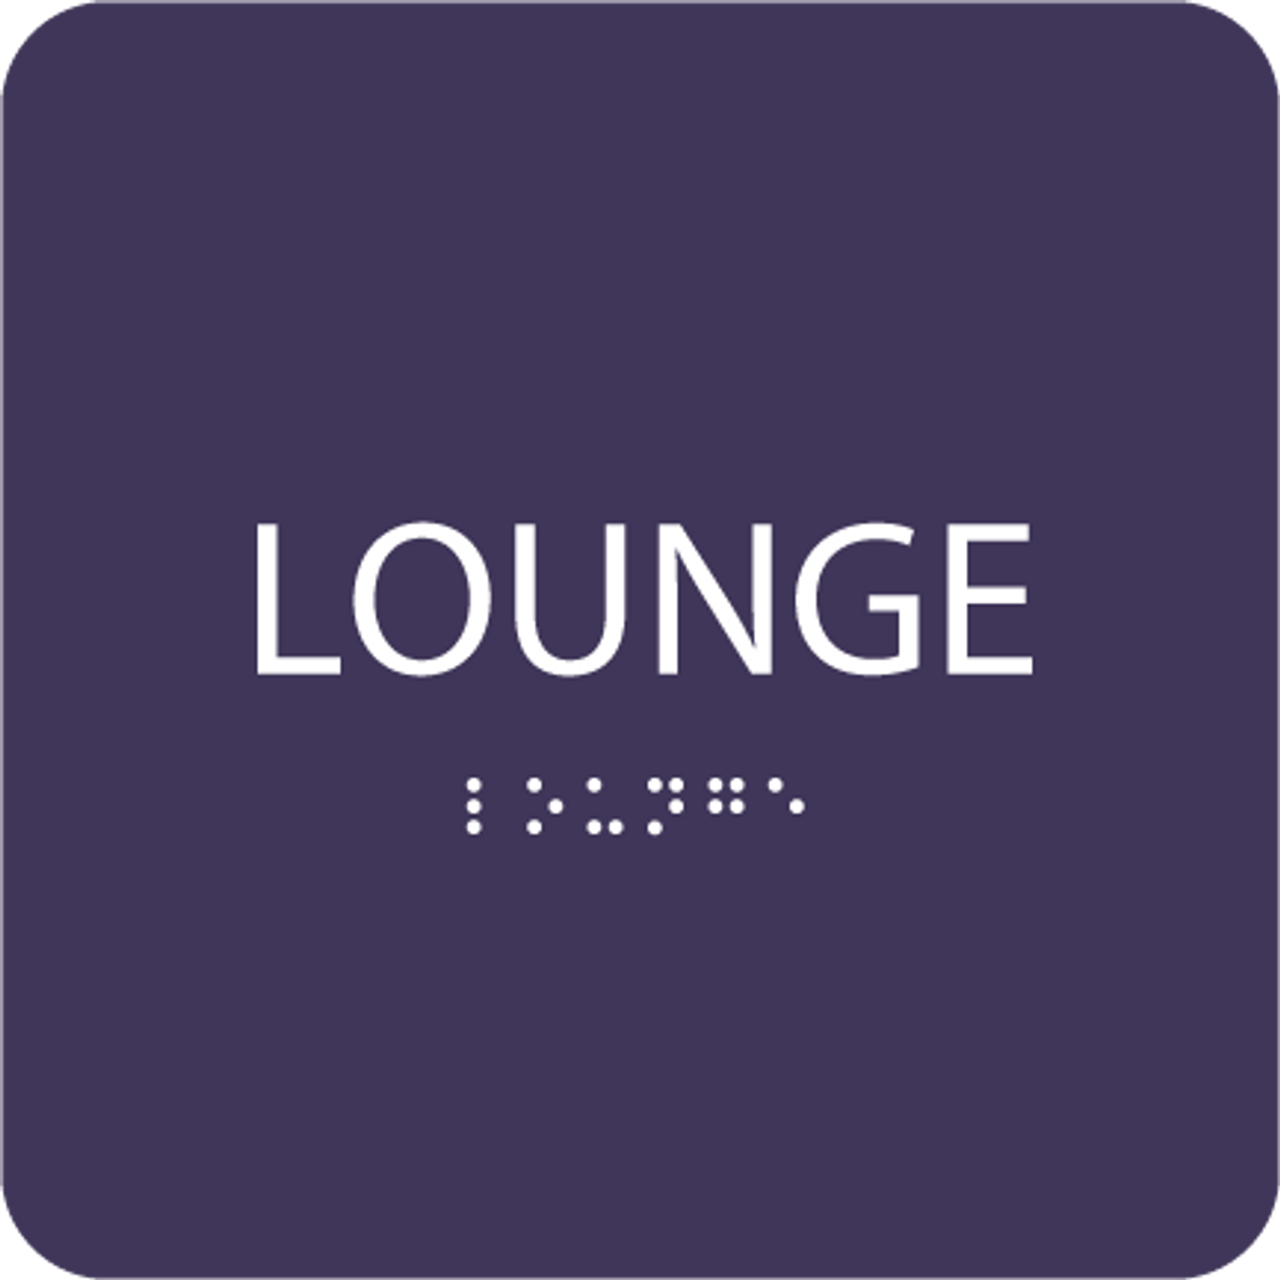 Purple Lounge ADA Sign